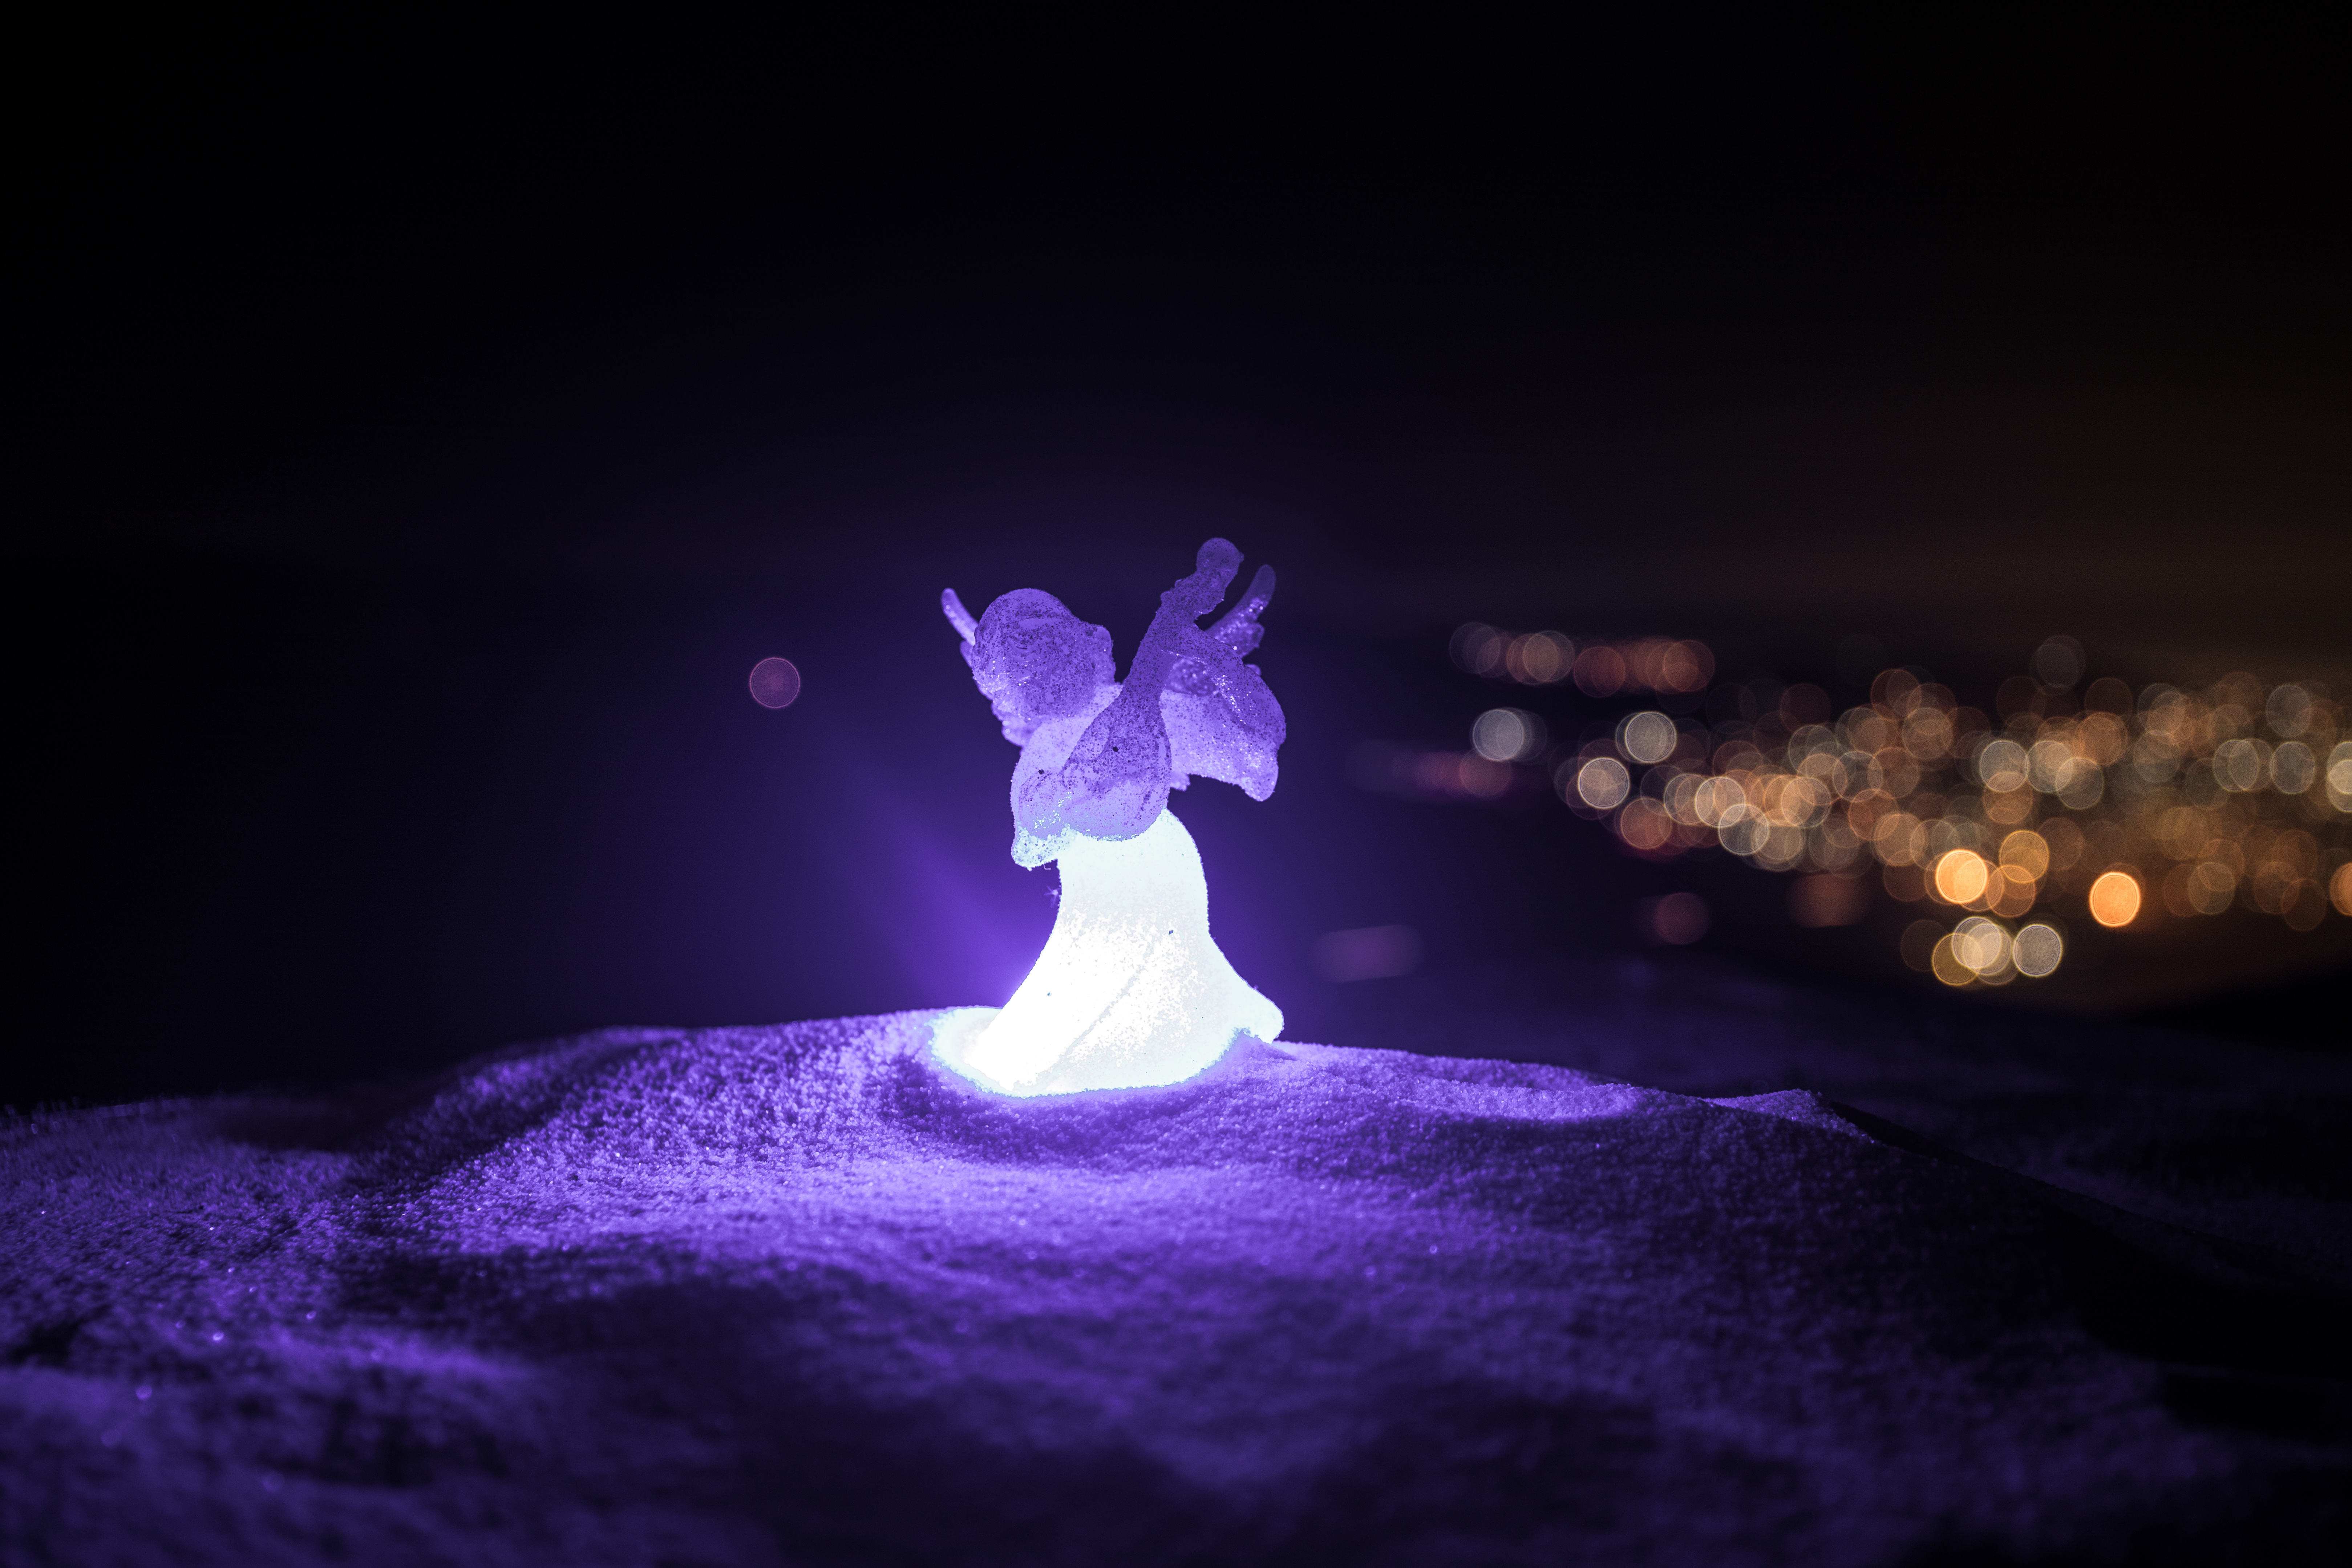 christmas angel on blur bokeh city lights at night on background. Little white guardian angel in snow.